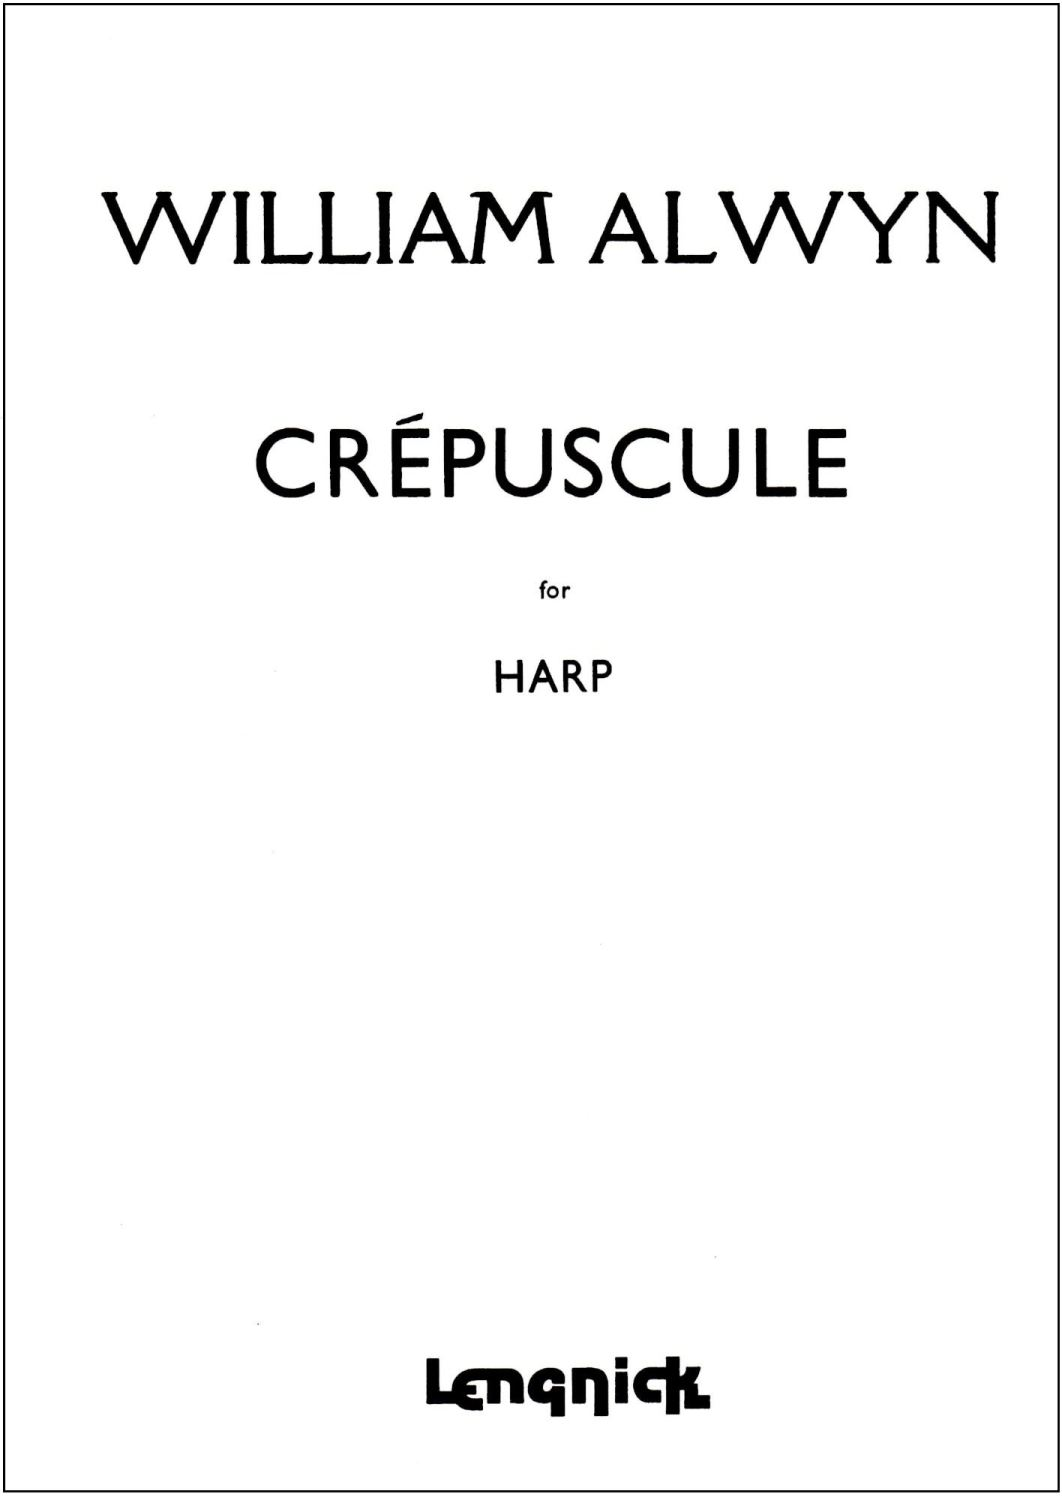 Crepuscule for Harp - William Alwyn